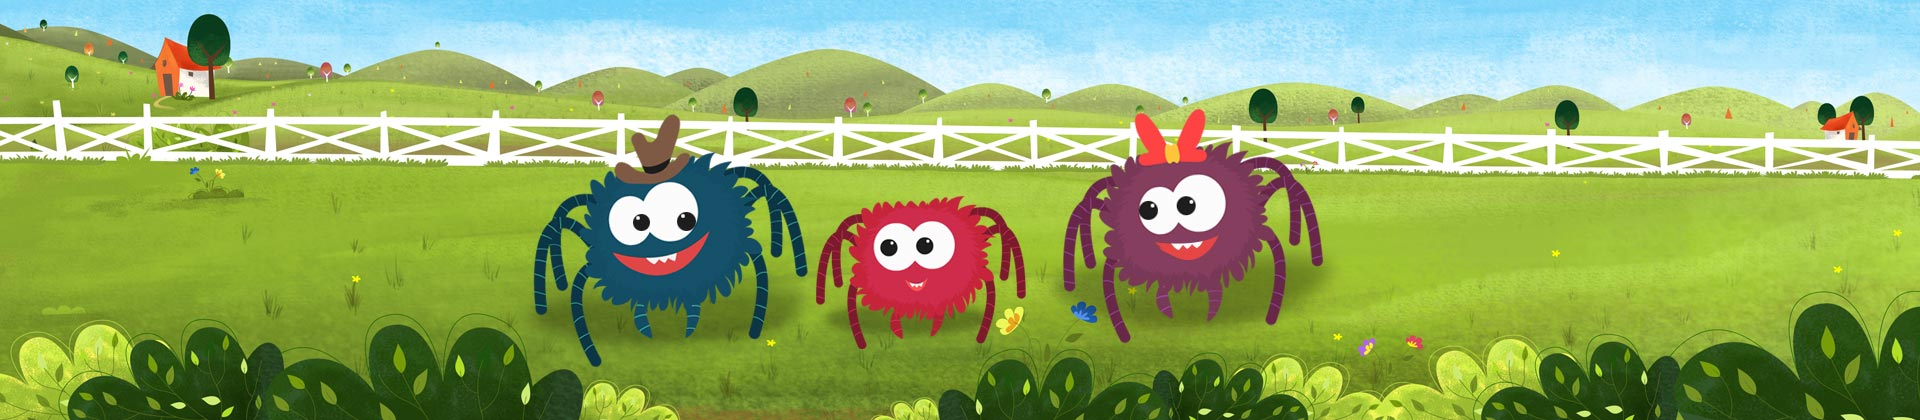 itsy bitsy spider nursery rhyme song